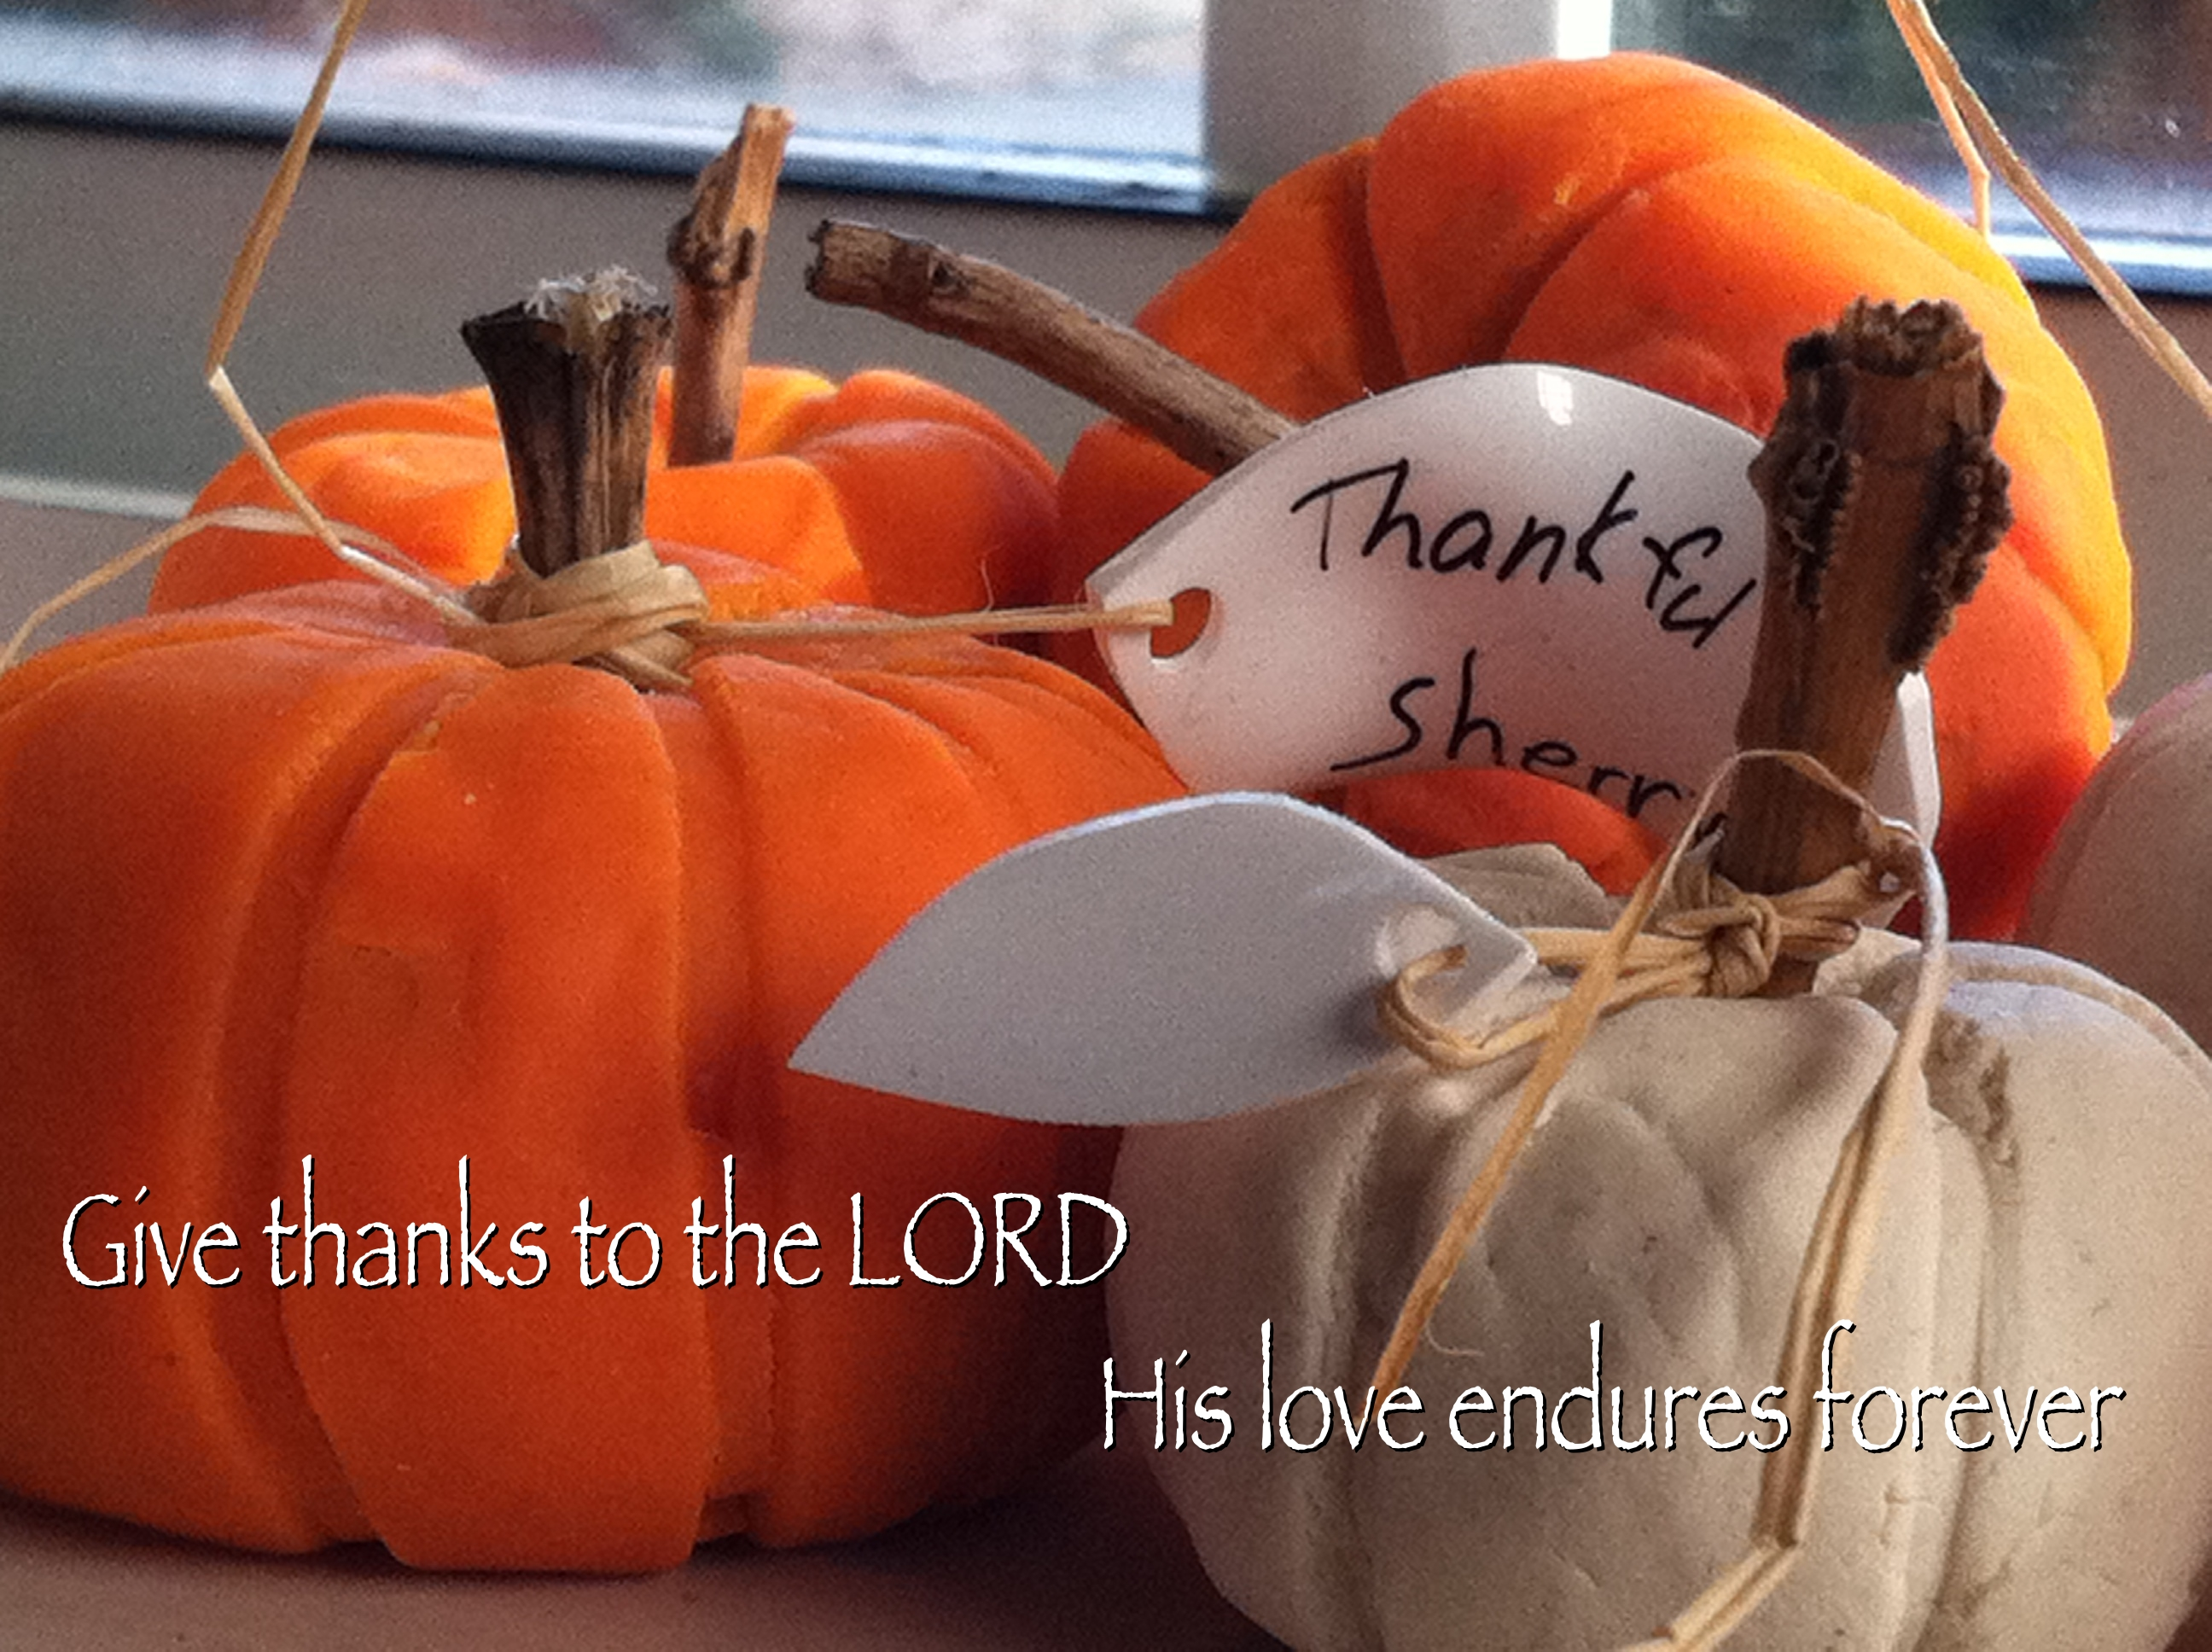 Giving Thanks 4 His Love Endures.